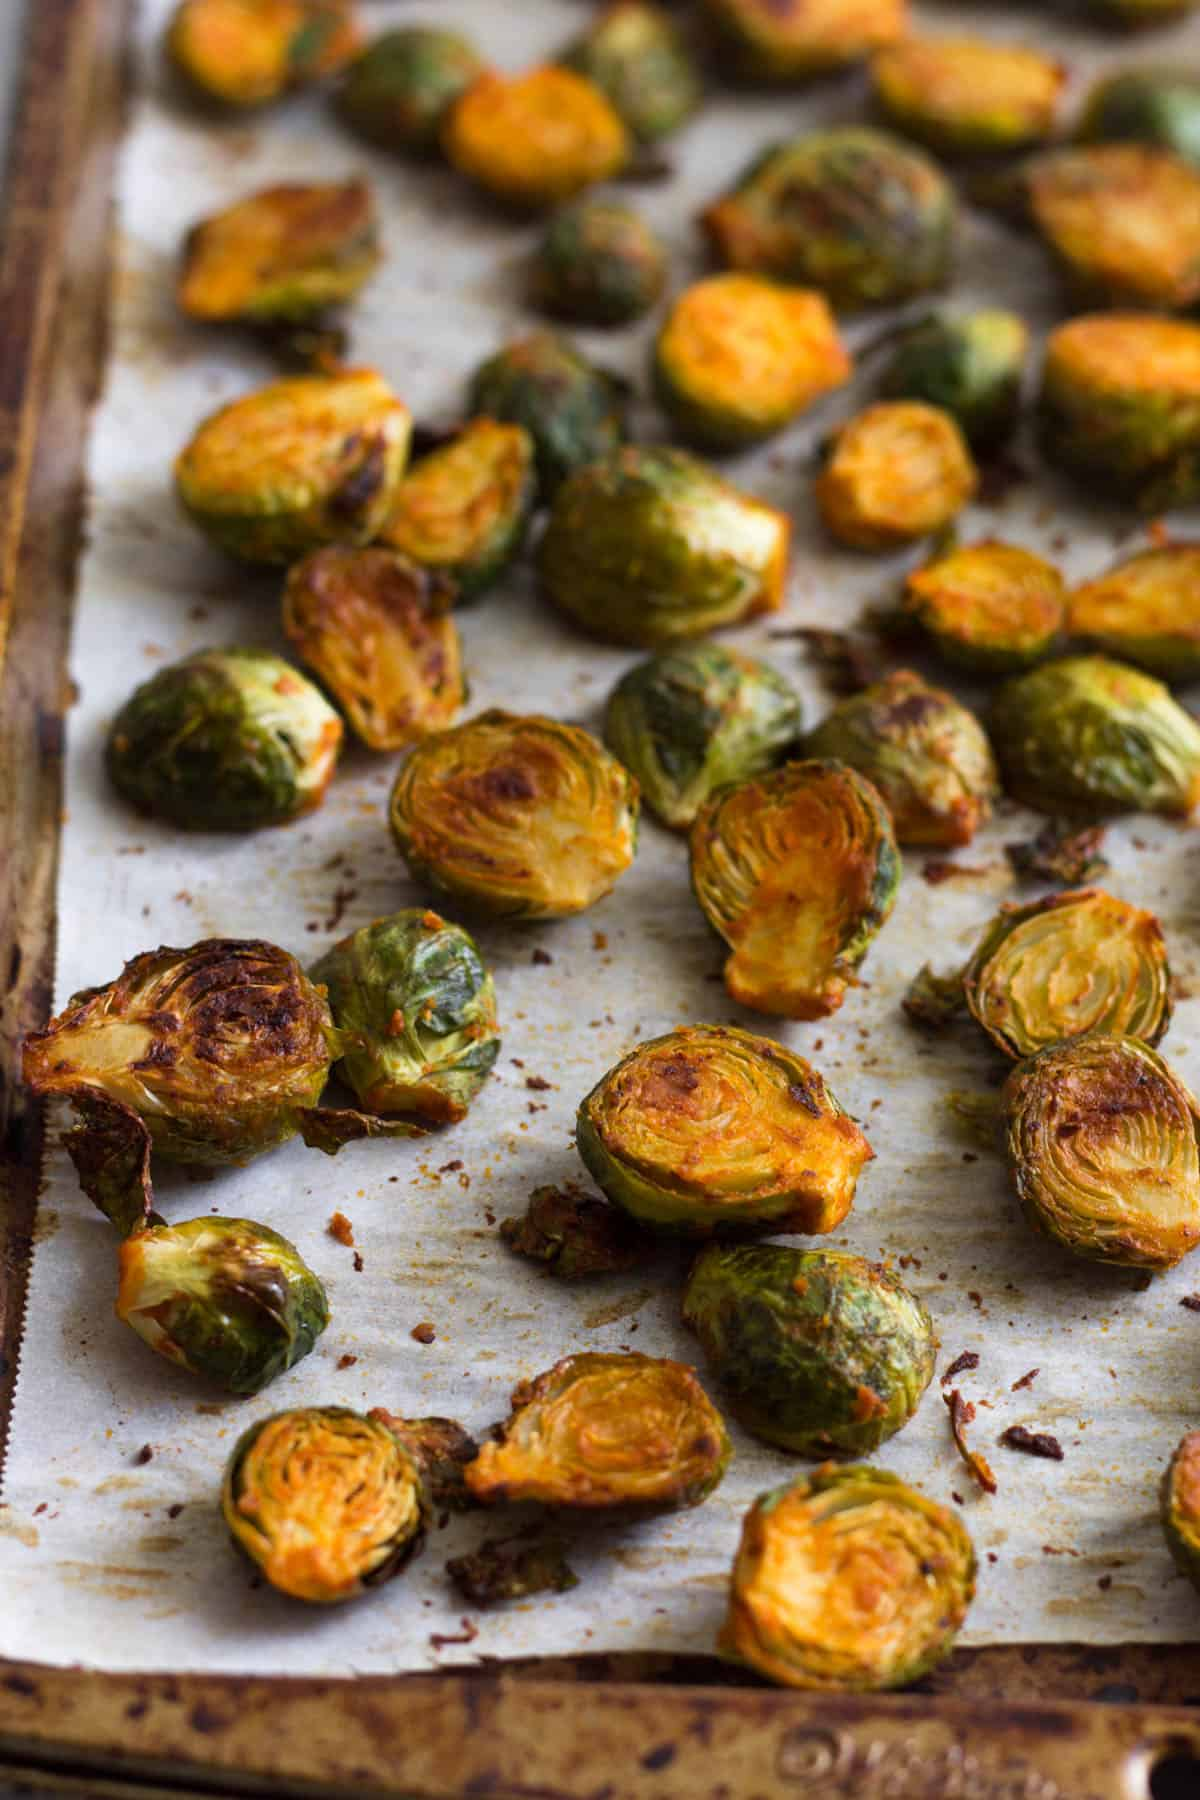 Pan of roasted buffalo brussel sprouts